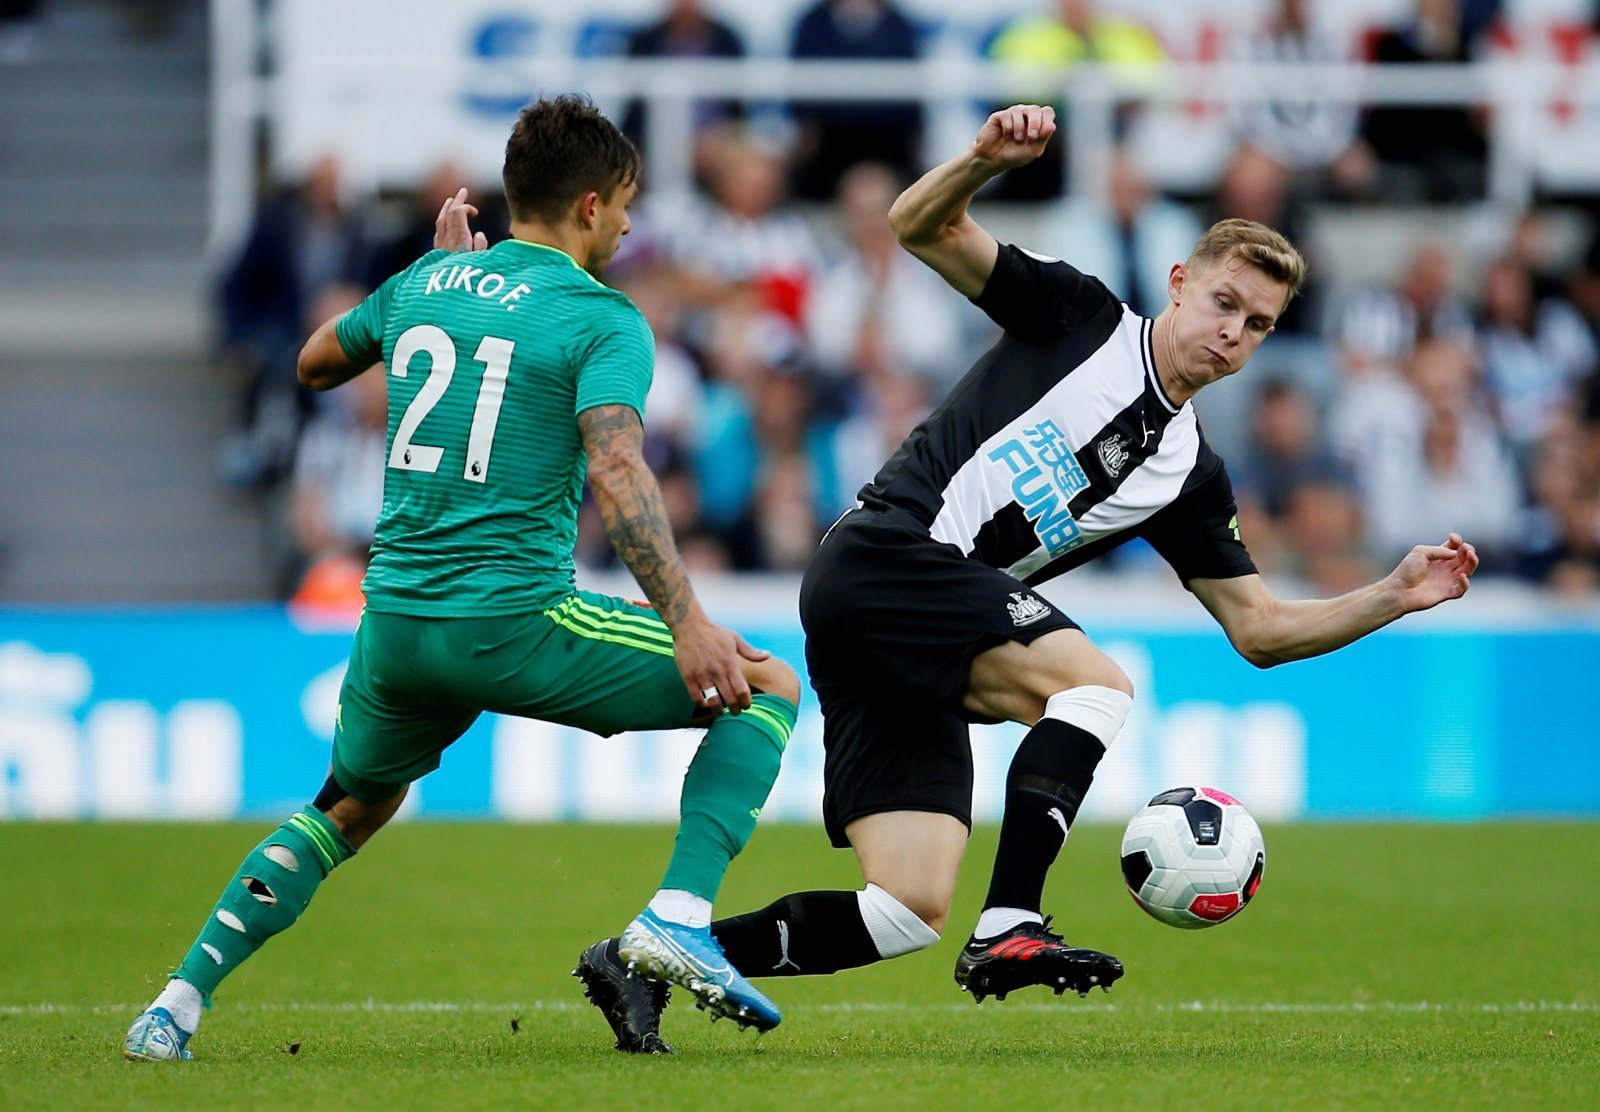 Newcastle: Krafth happy with start to life at St. James' Park